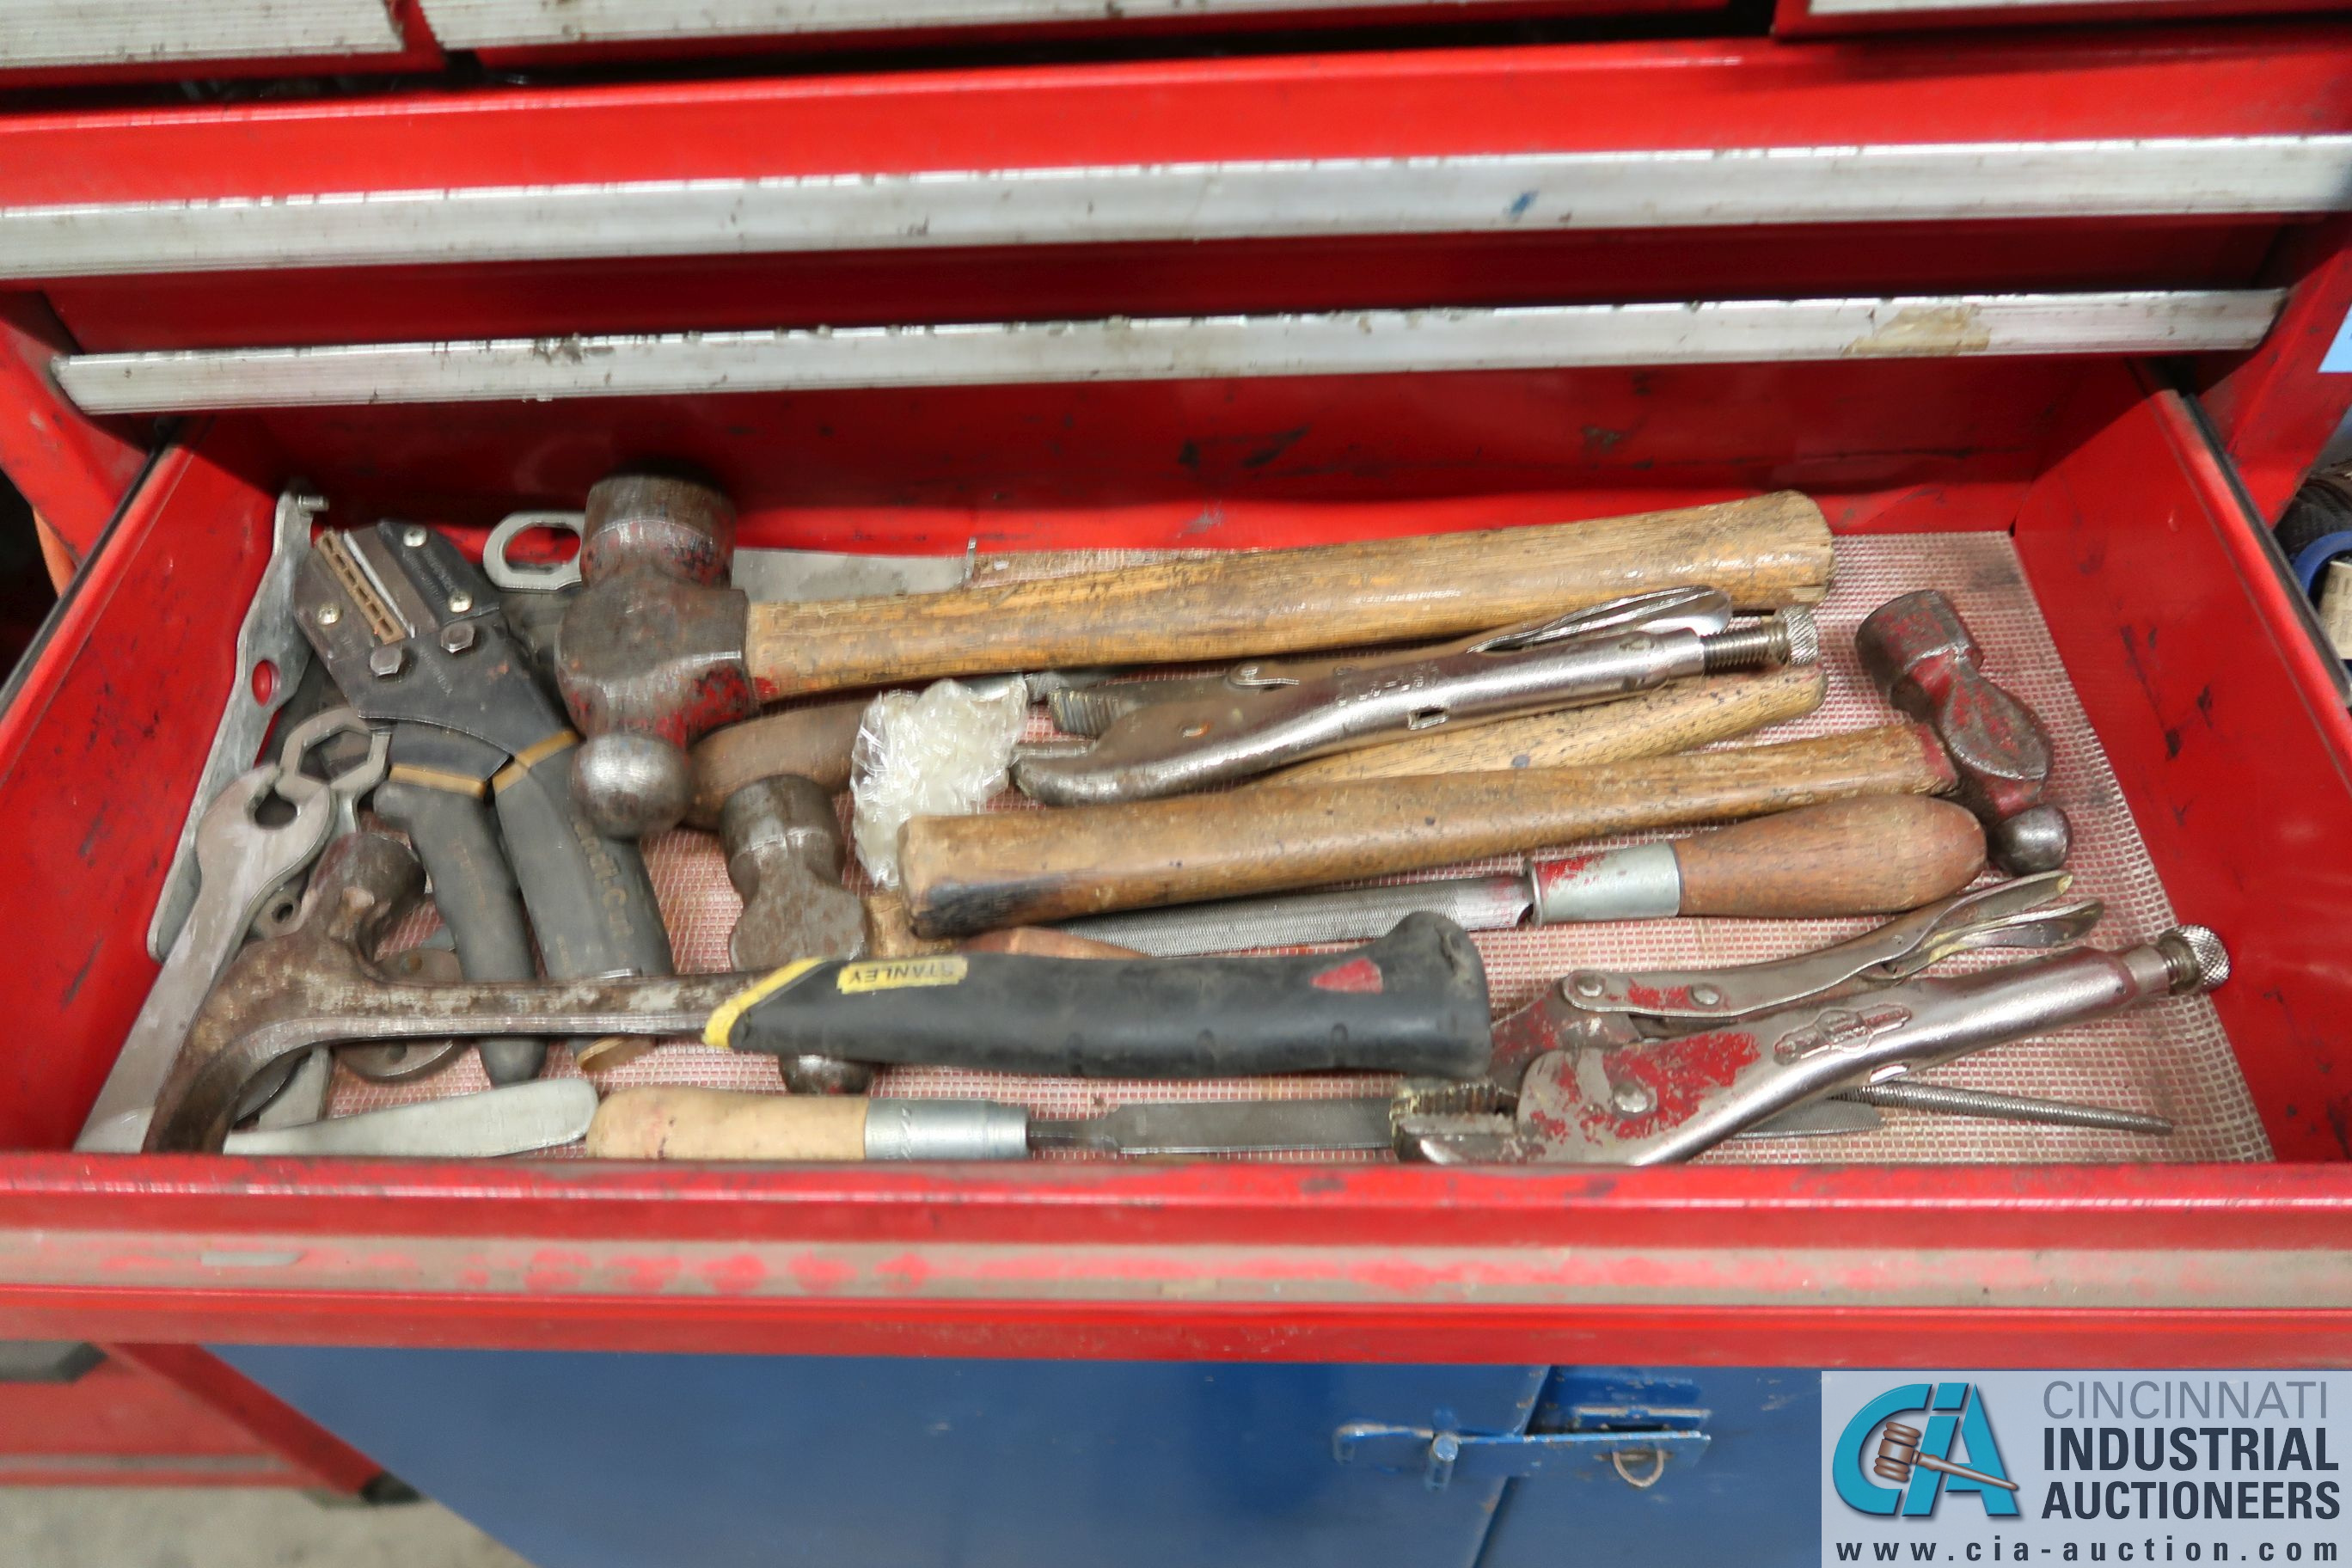 (LOT) 6-DRAWER TOOL BOX WITH PORTABLE 2-DOOR CABINET AND TOOLS - Image 6 of 7